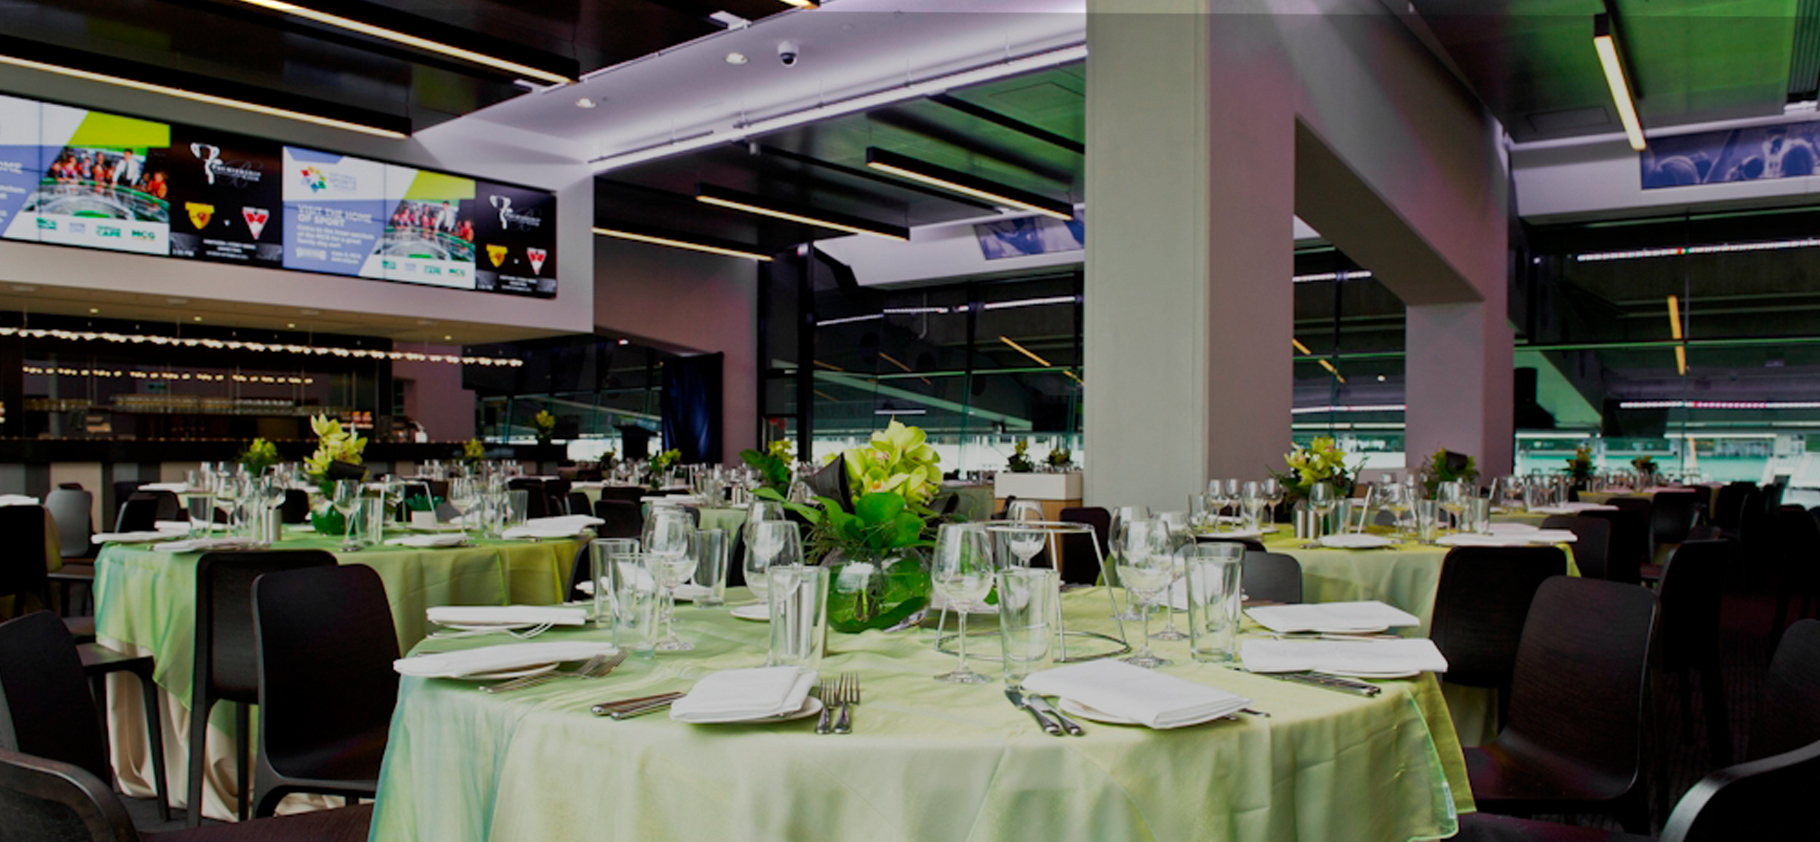 How to start a restaurant family style dining dining for Dining room operations